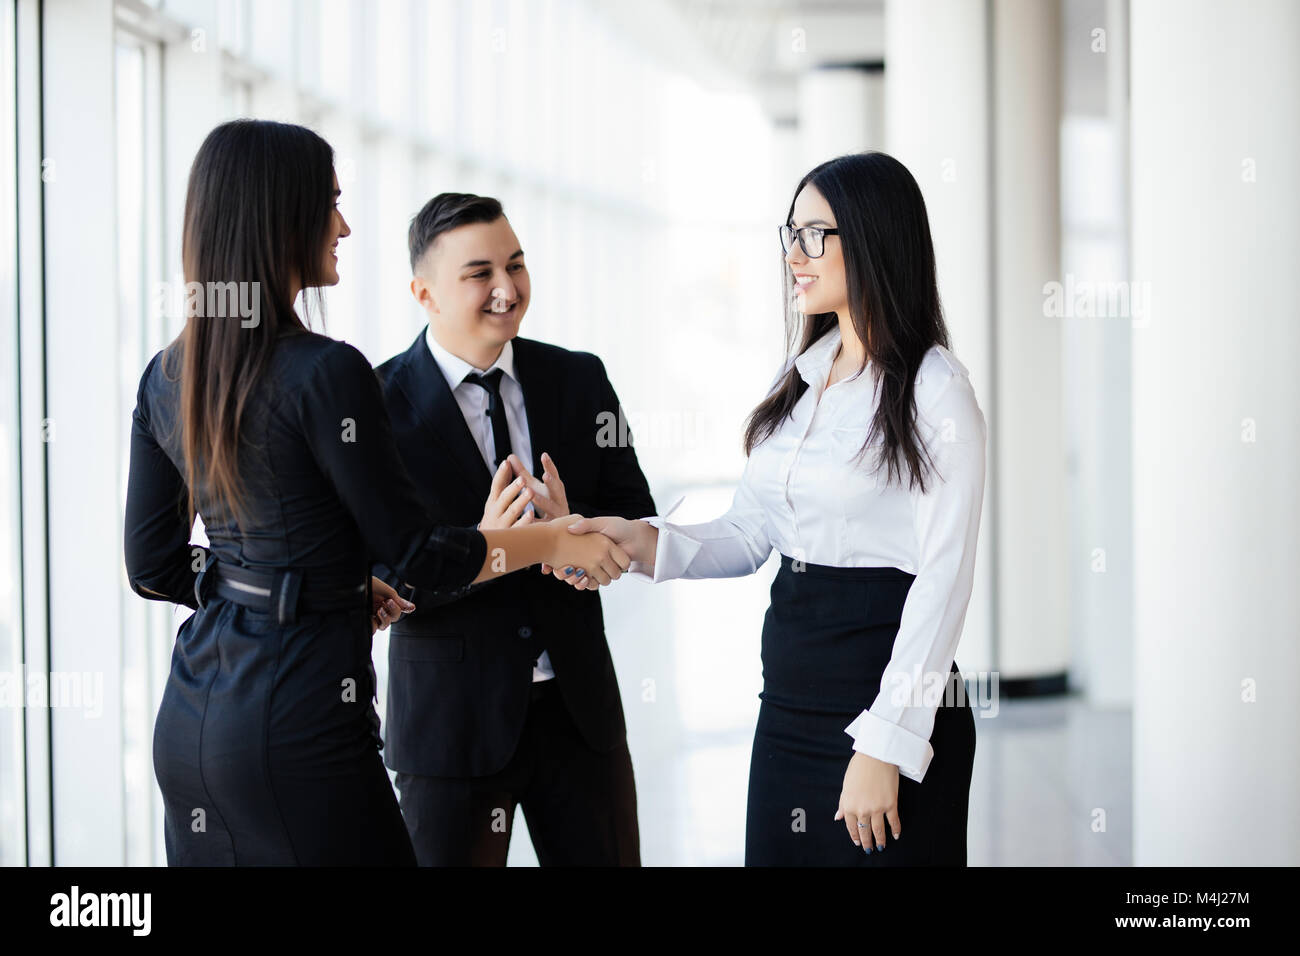 Business partners shaking hands in meeting hall - Stock Image